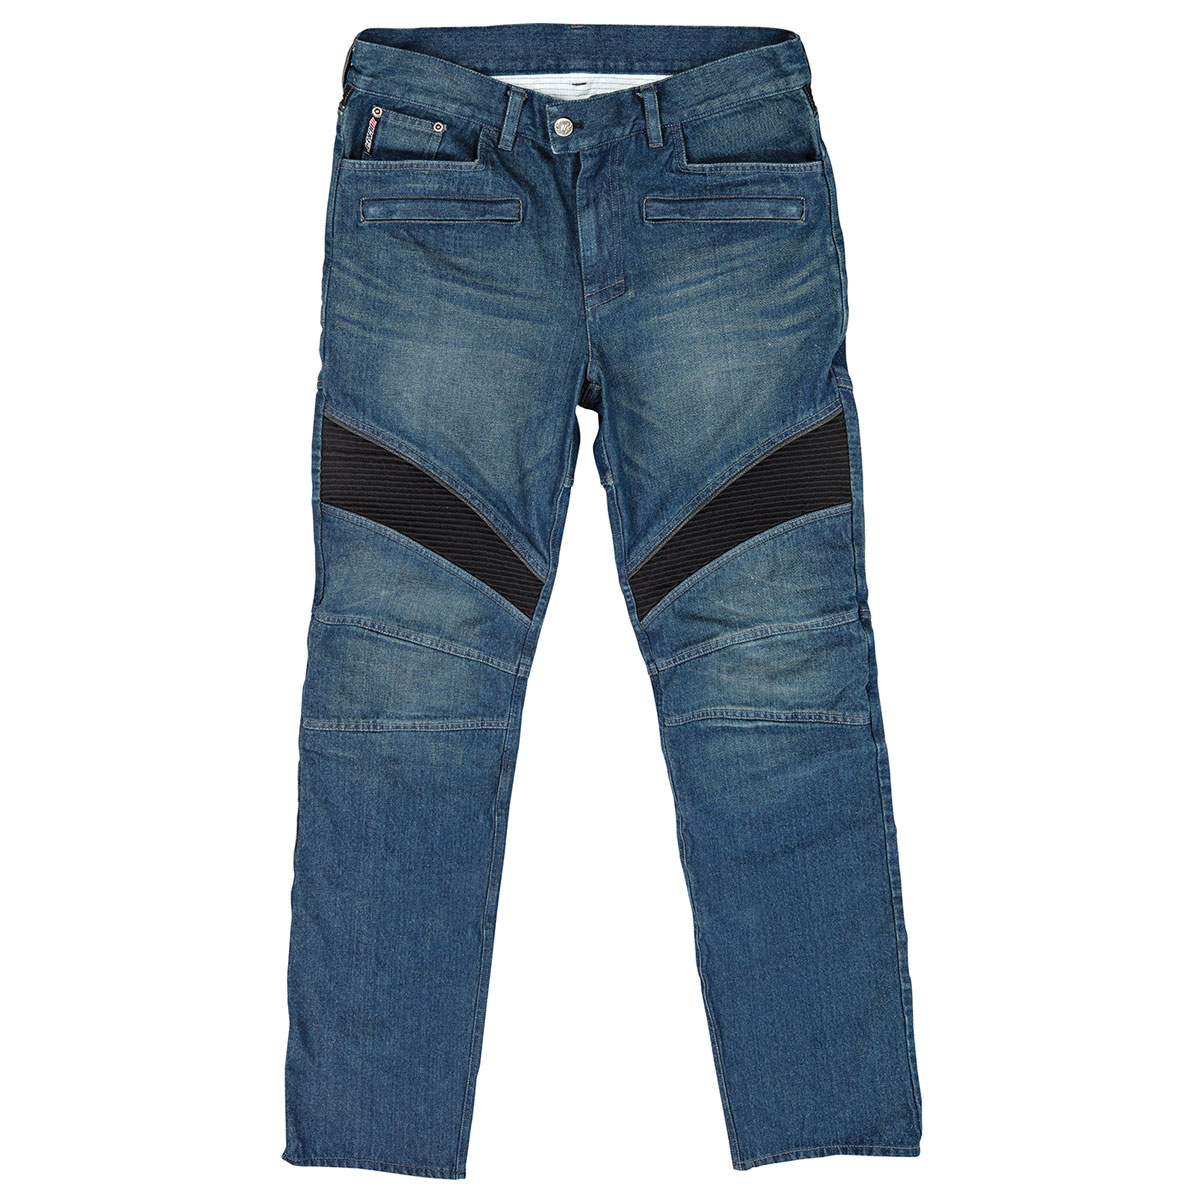 Joe Rocket Men's Accelerator Blue Jeans